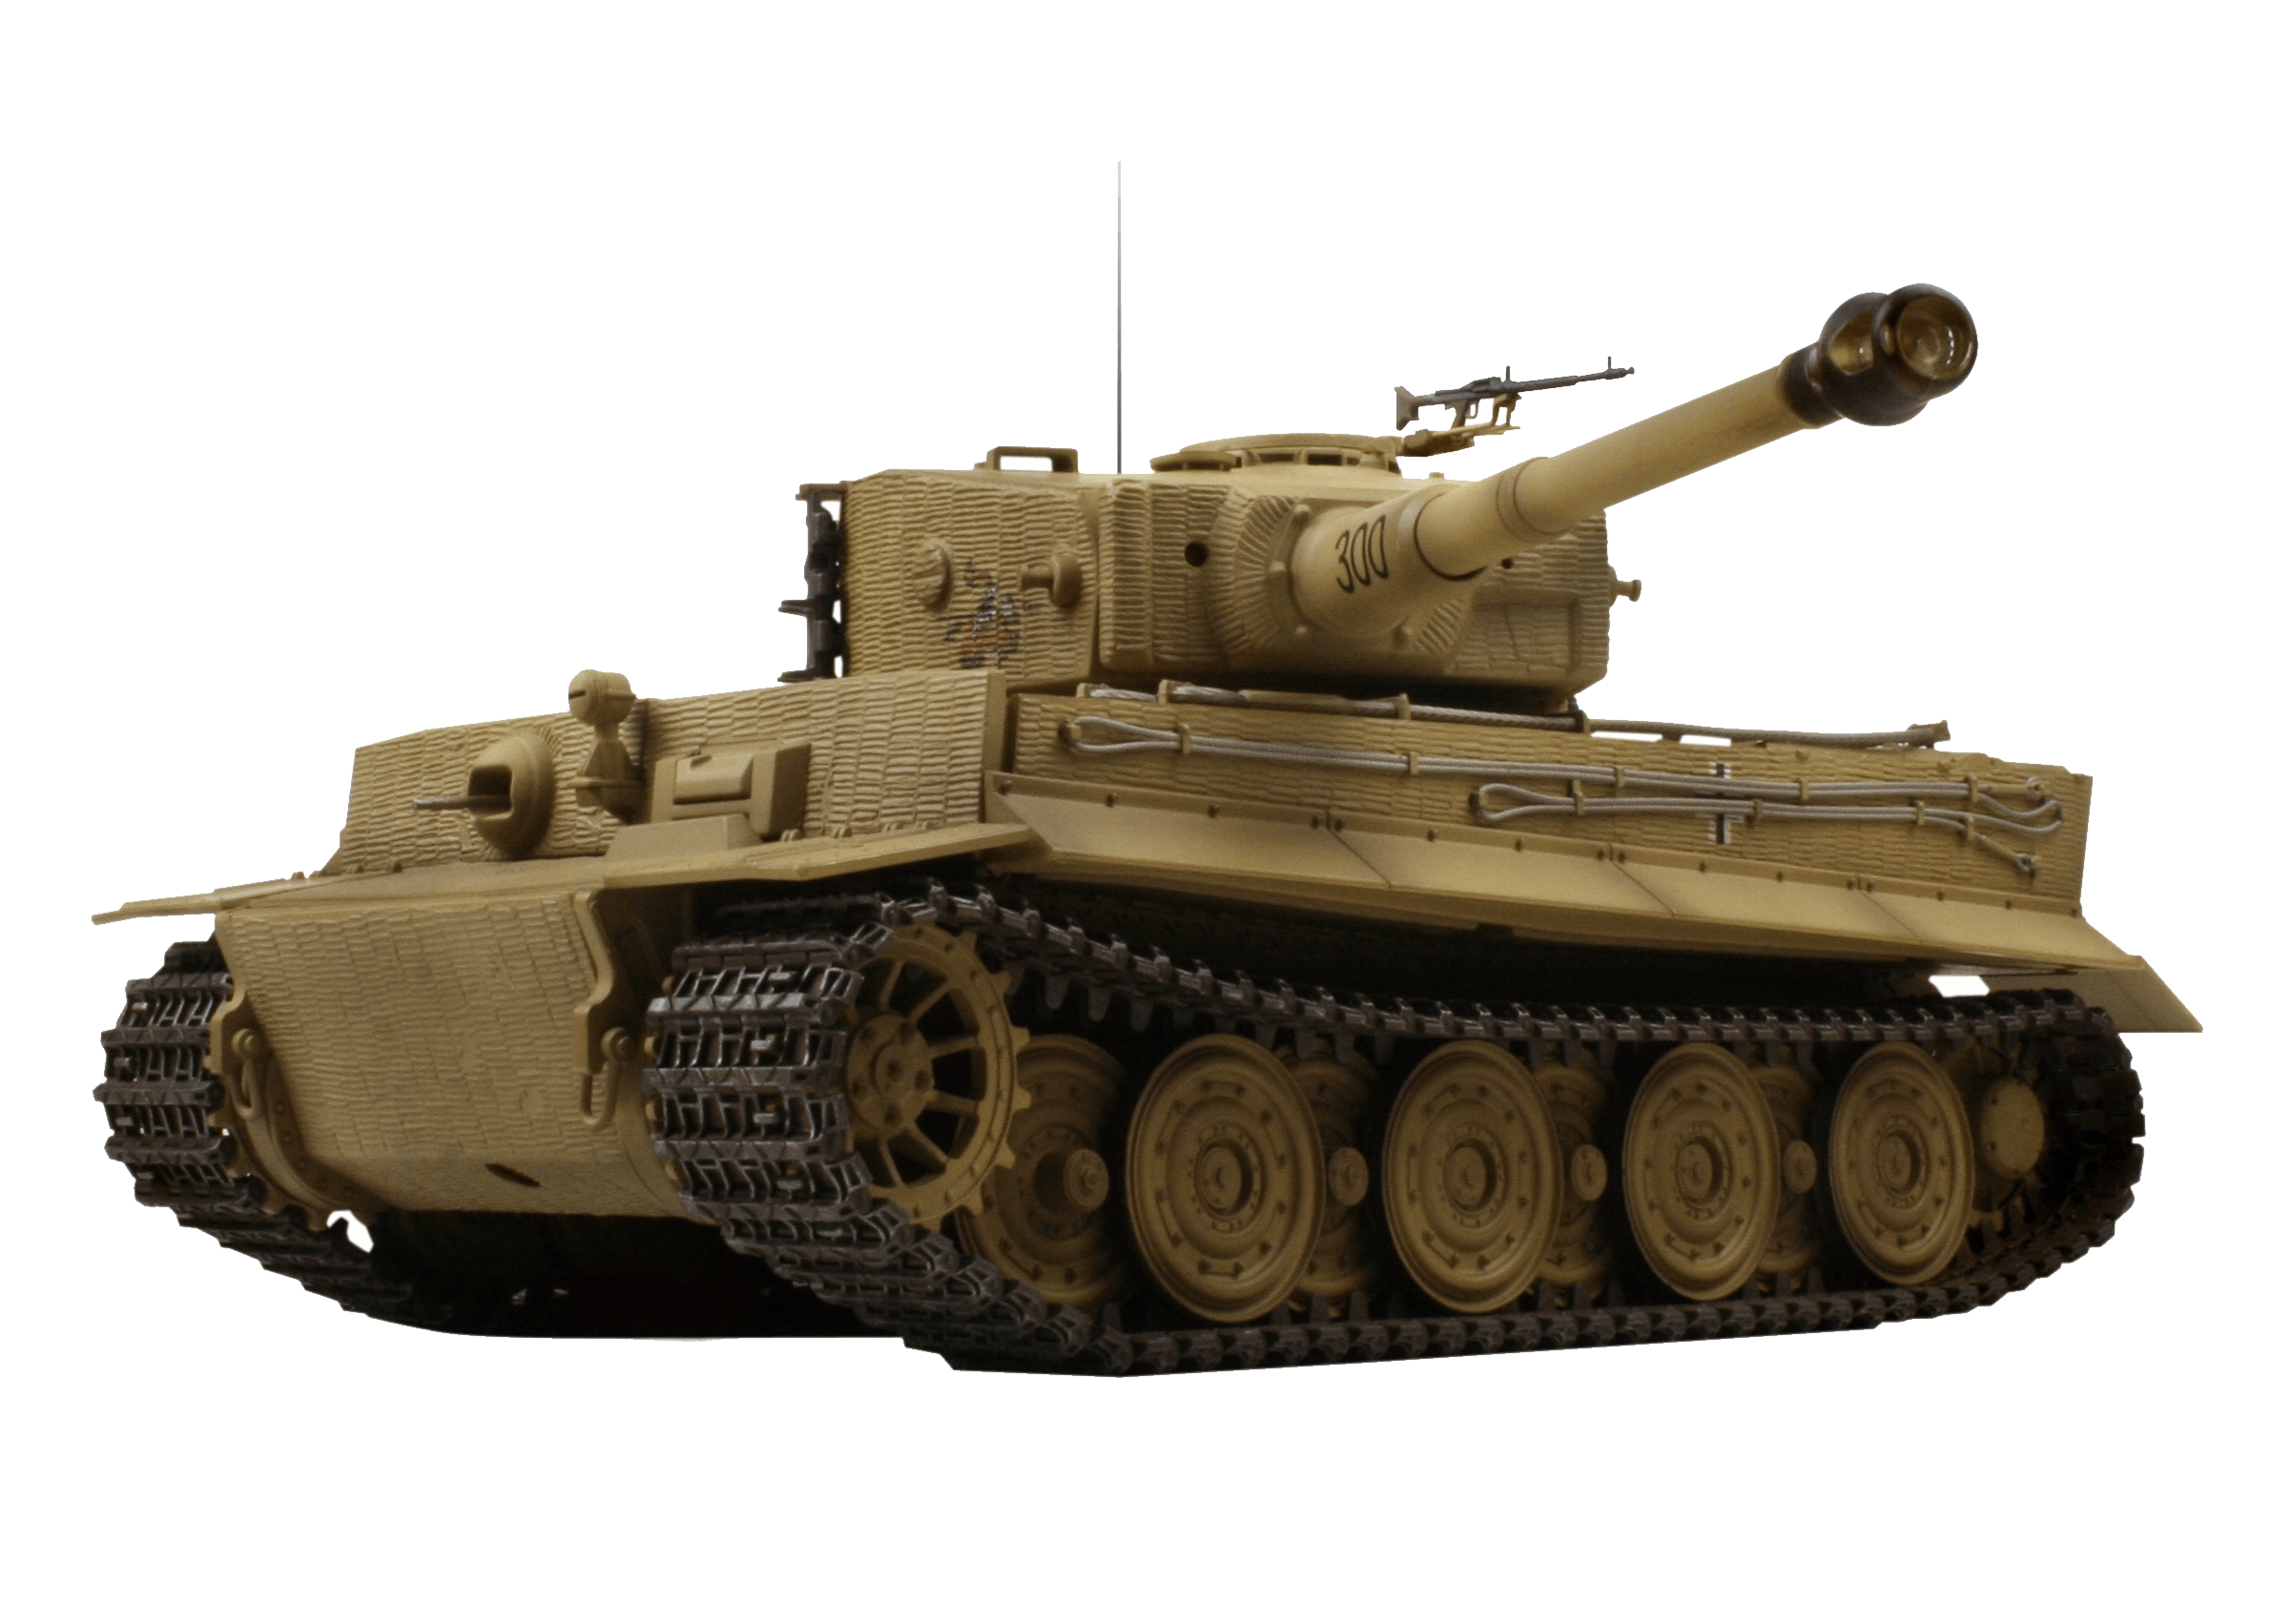 Download Tank Free PNG photo images and clipart